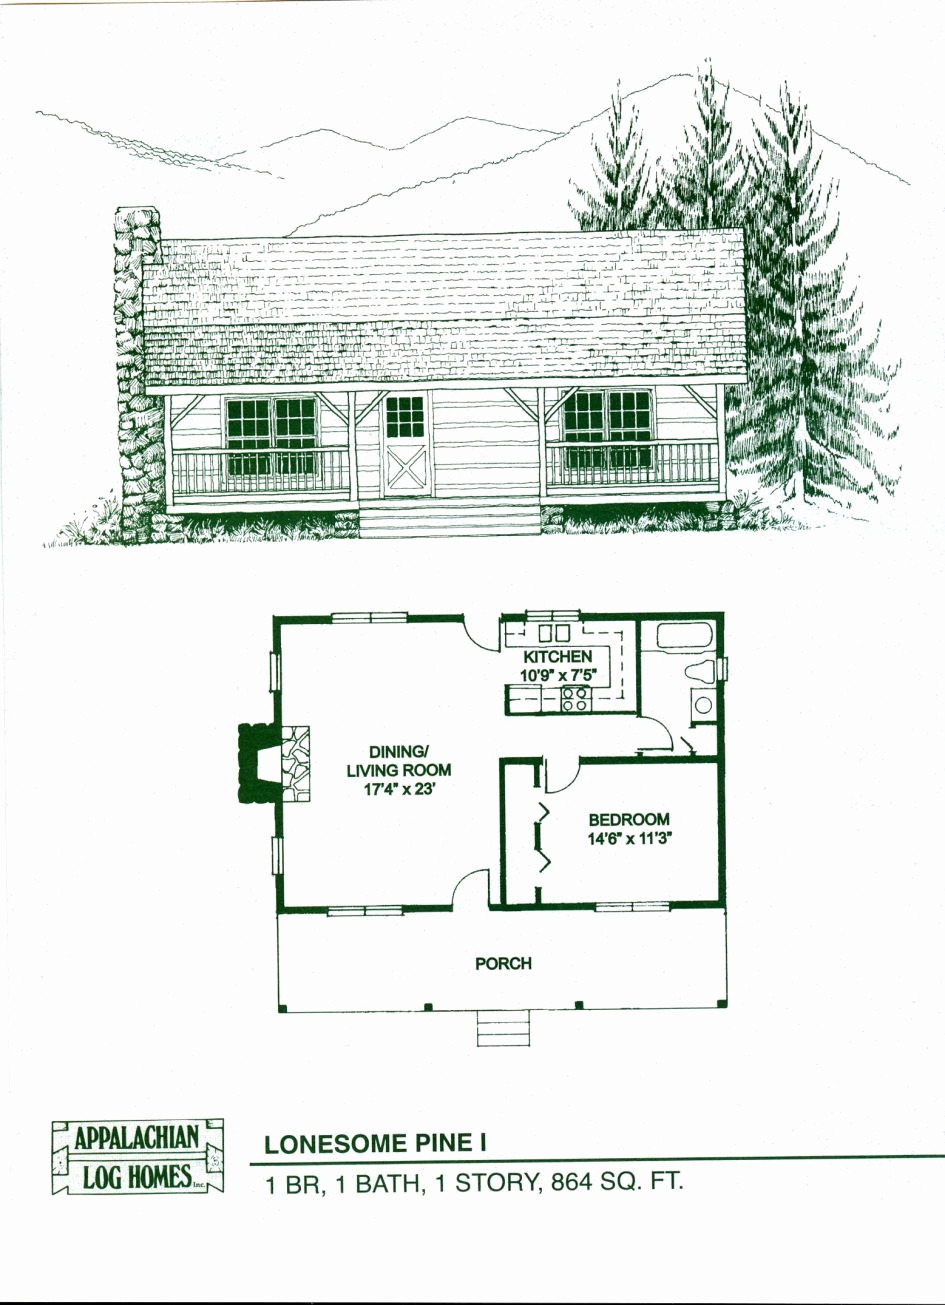 draw room layout free home and interior ideas easy to use house plan drawing software mercial